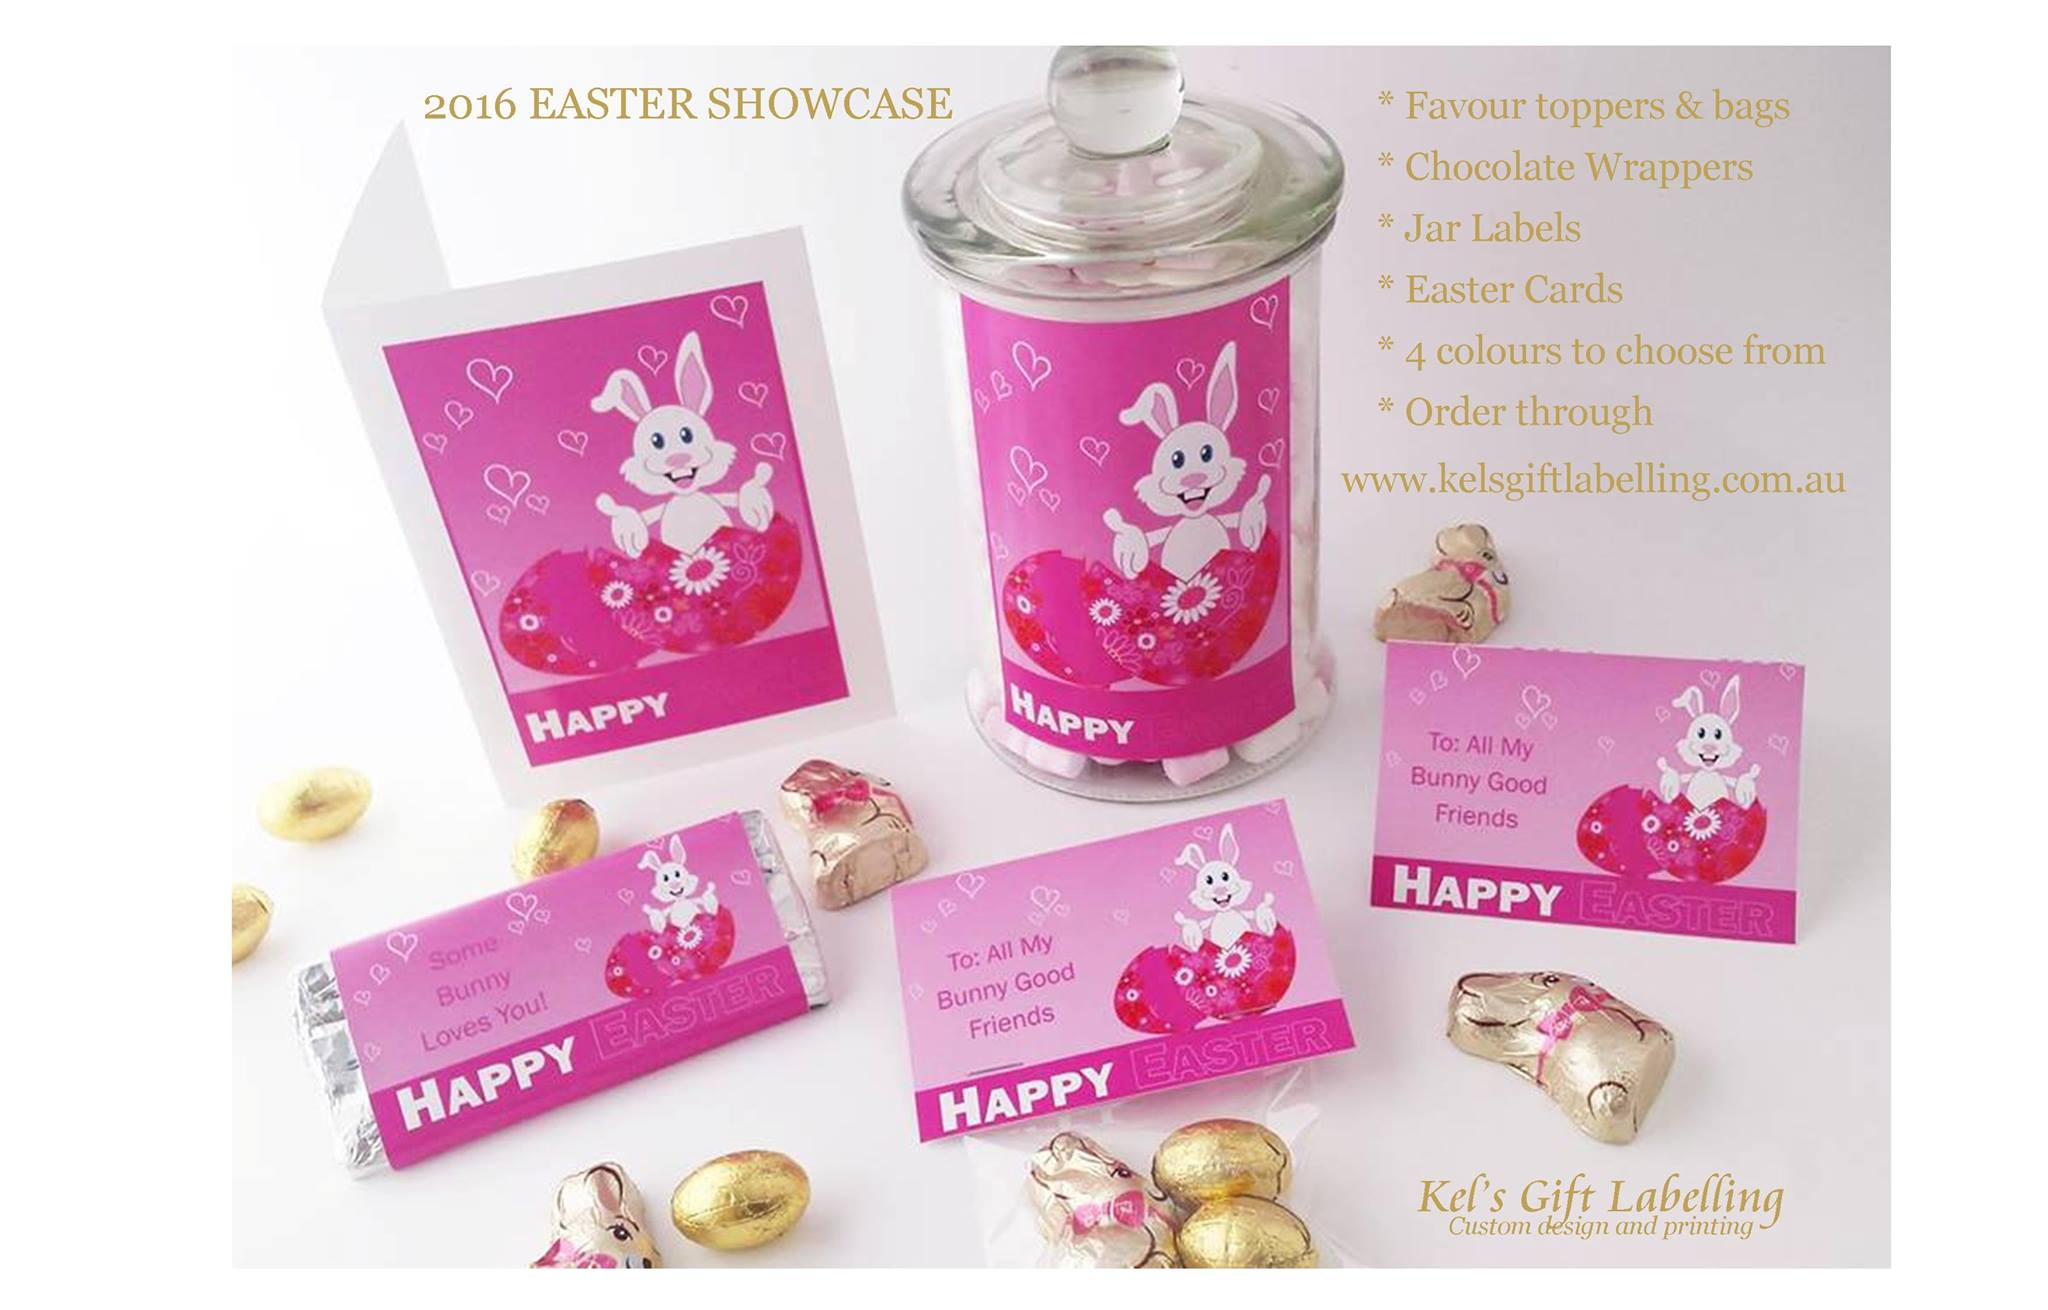 Easter gift stationery - Kel's Gift Labelling